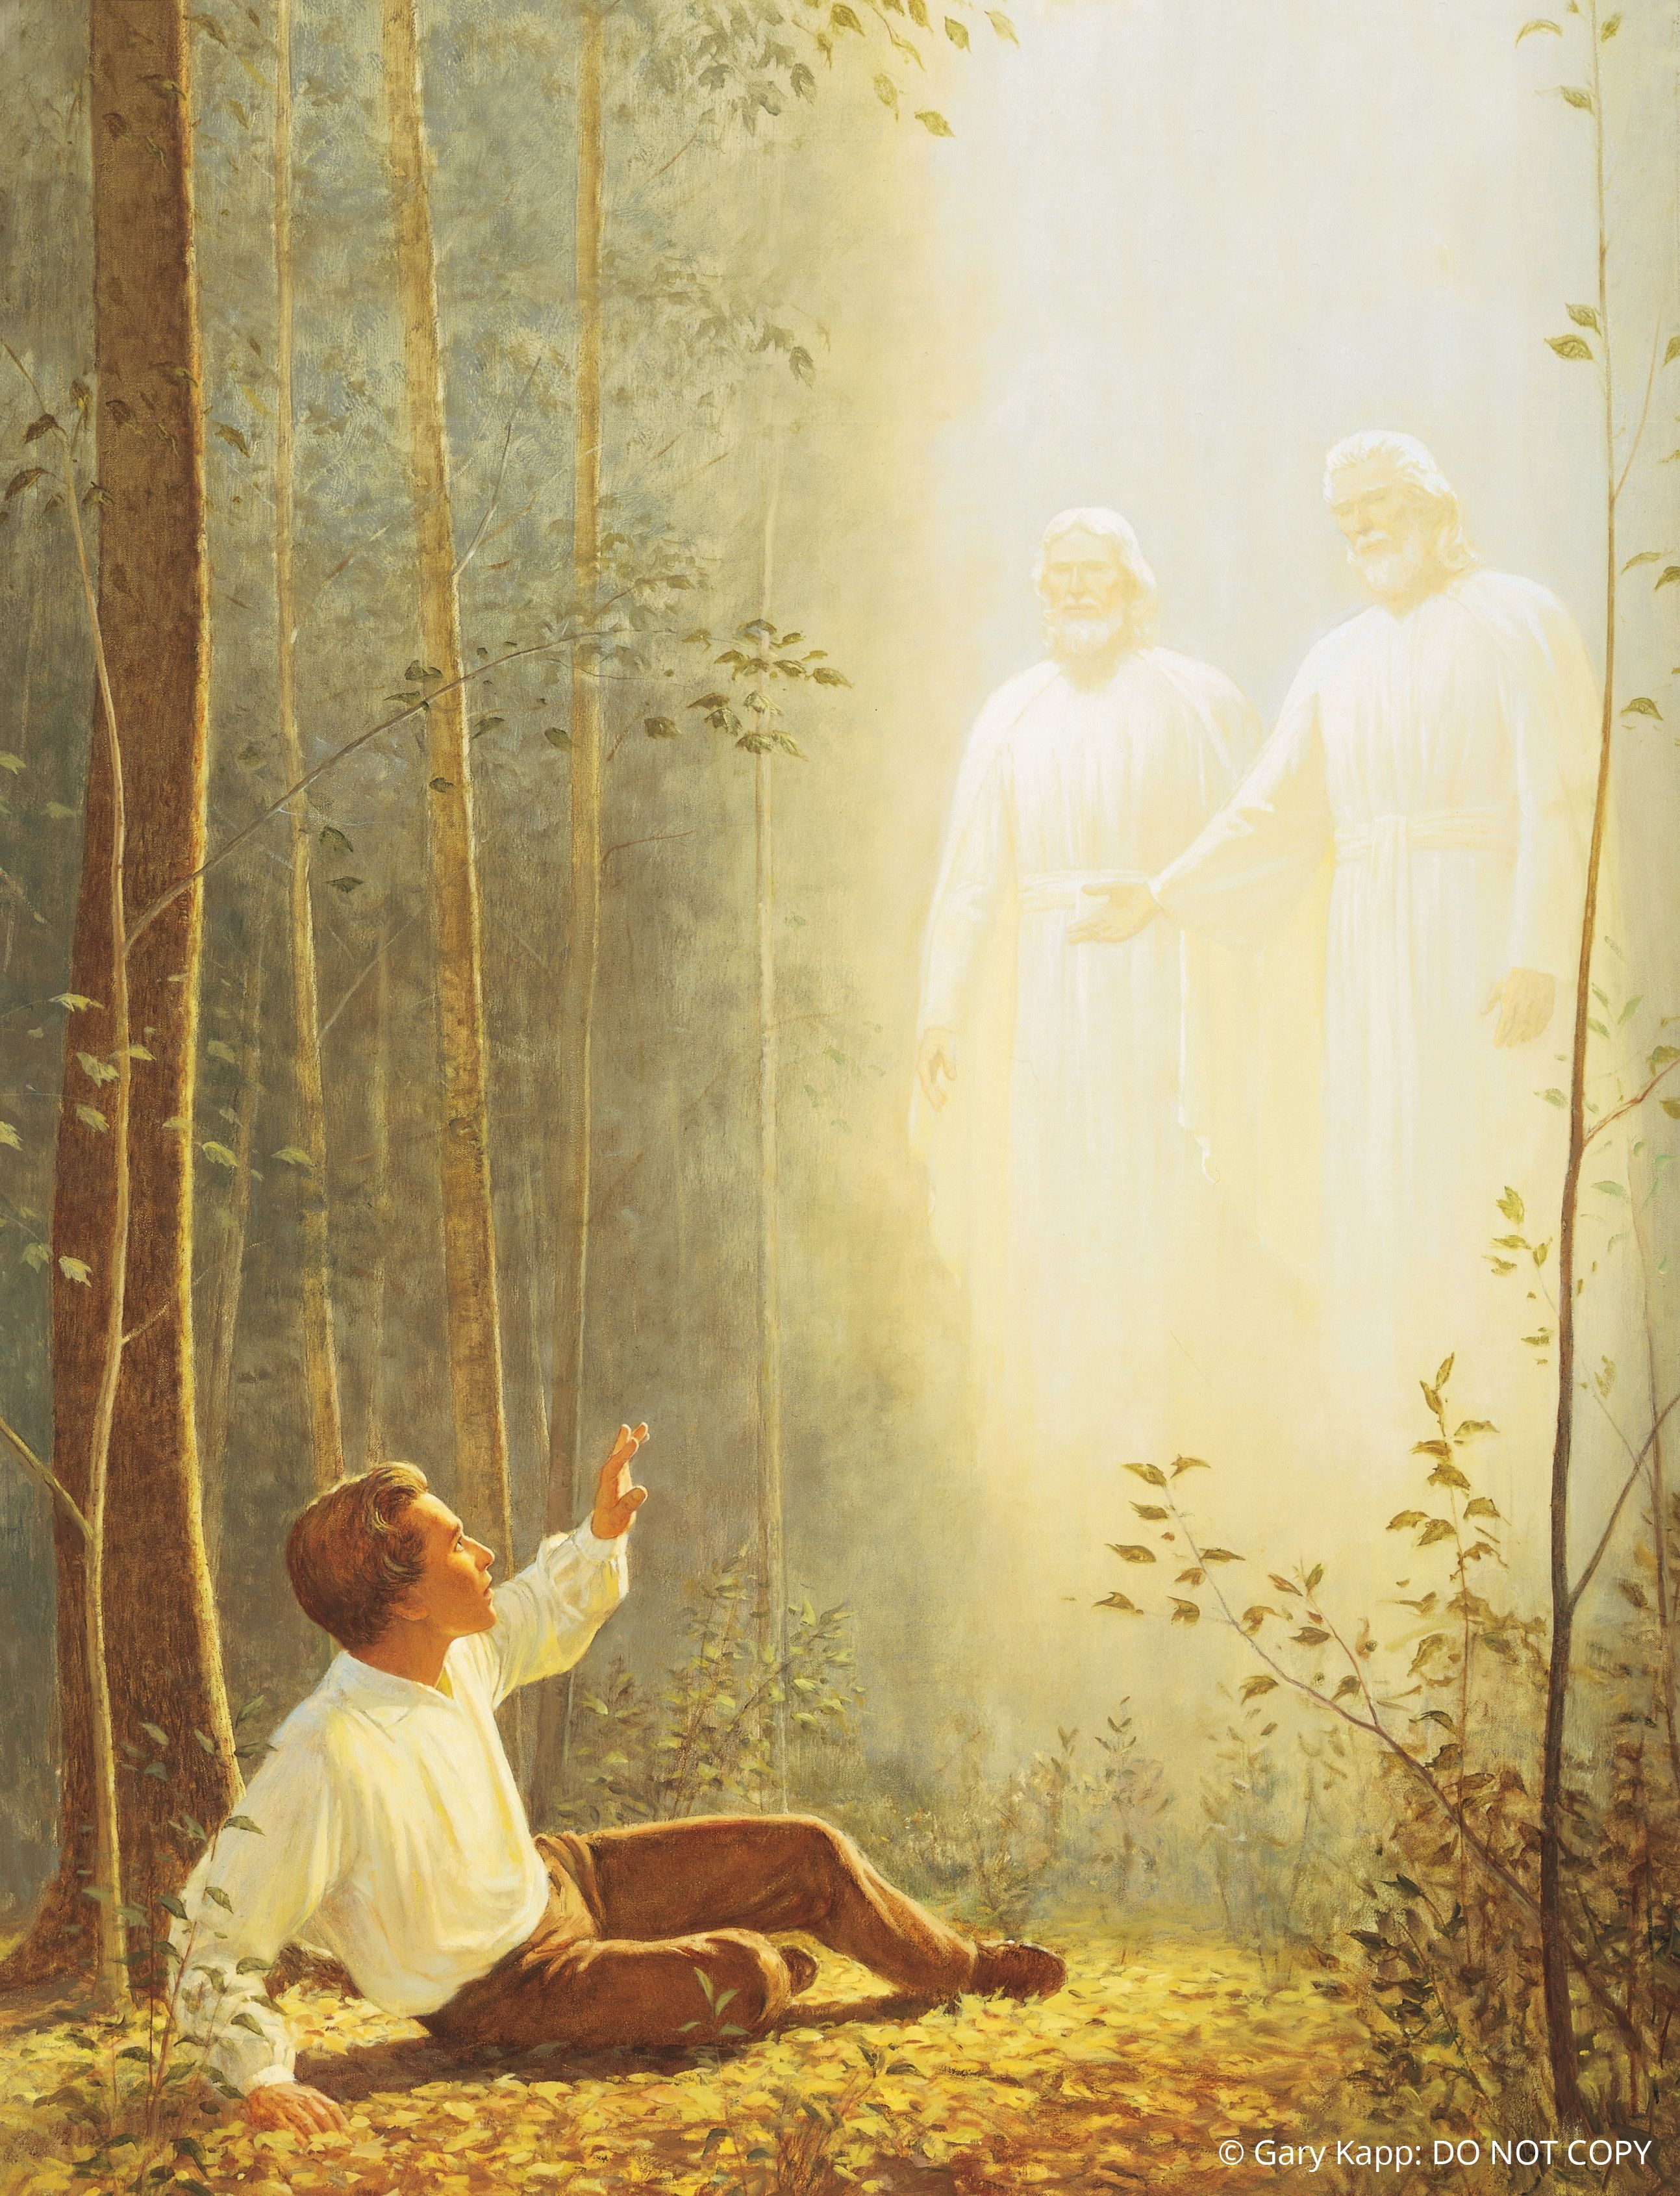 The First Vision, by Gary Kapp; GAB 90; nursery manual lesson 9, page 42; Joseph Smith—History 1:14–20; © Gary Kapp: DO NOT COPY. This asset is for Church use and online viewing only.